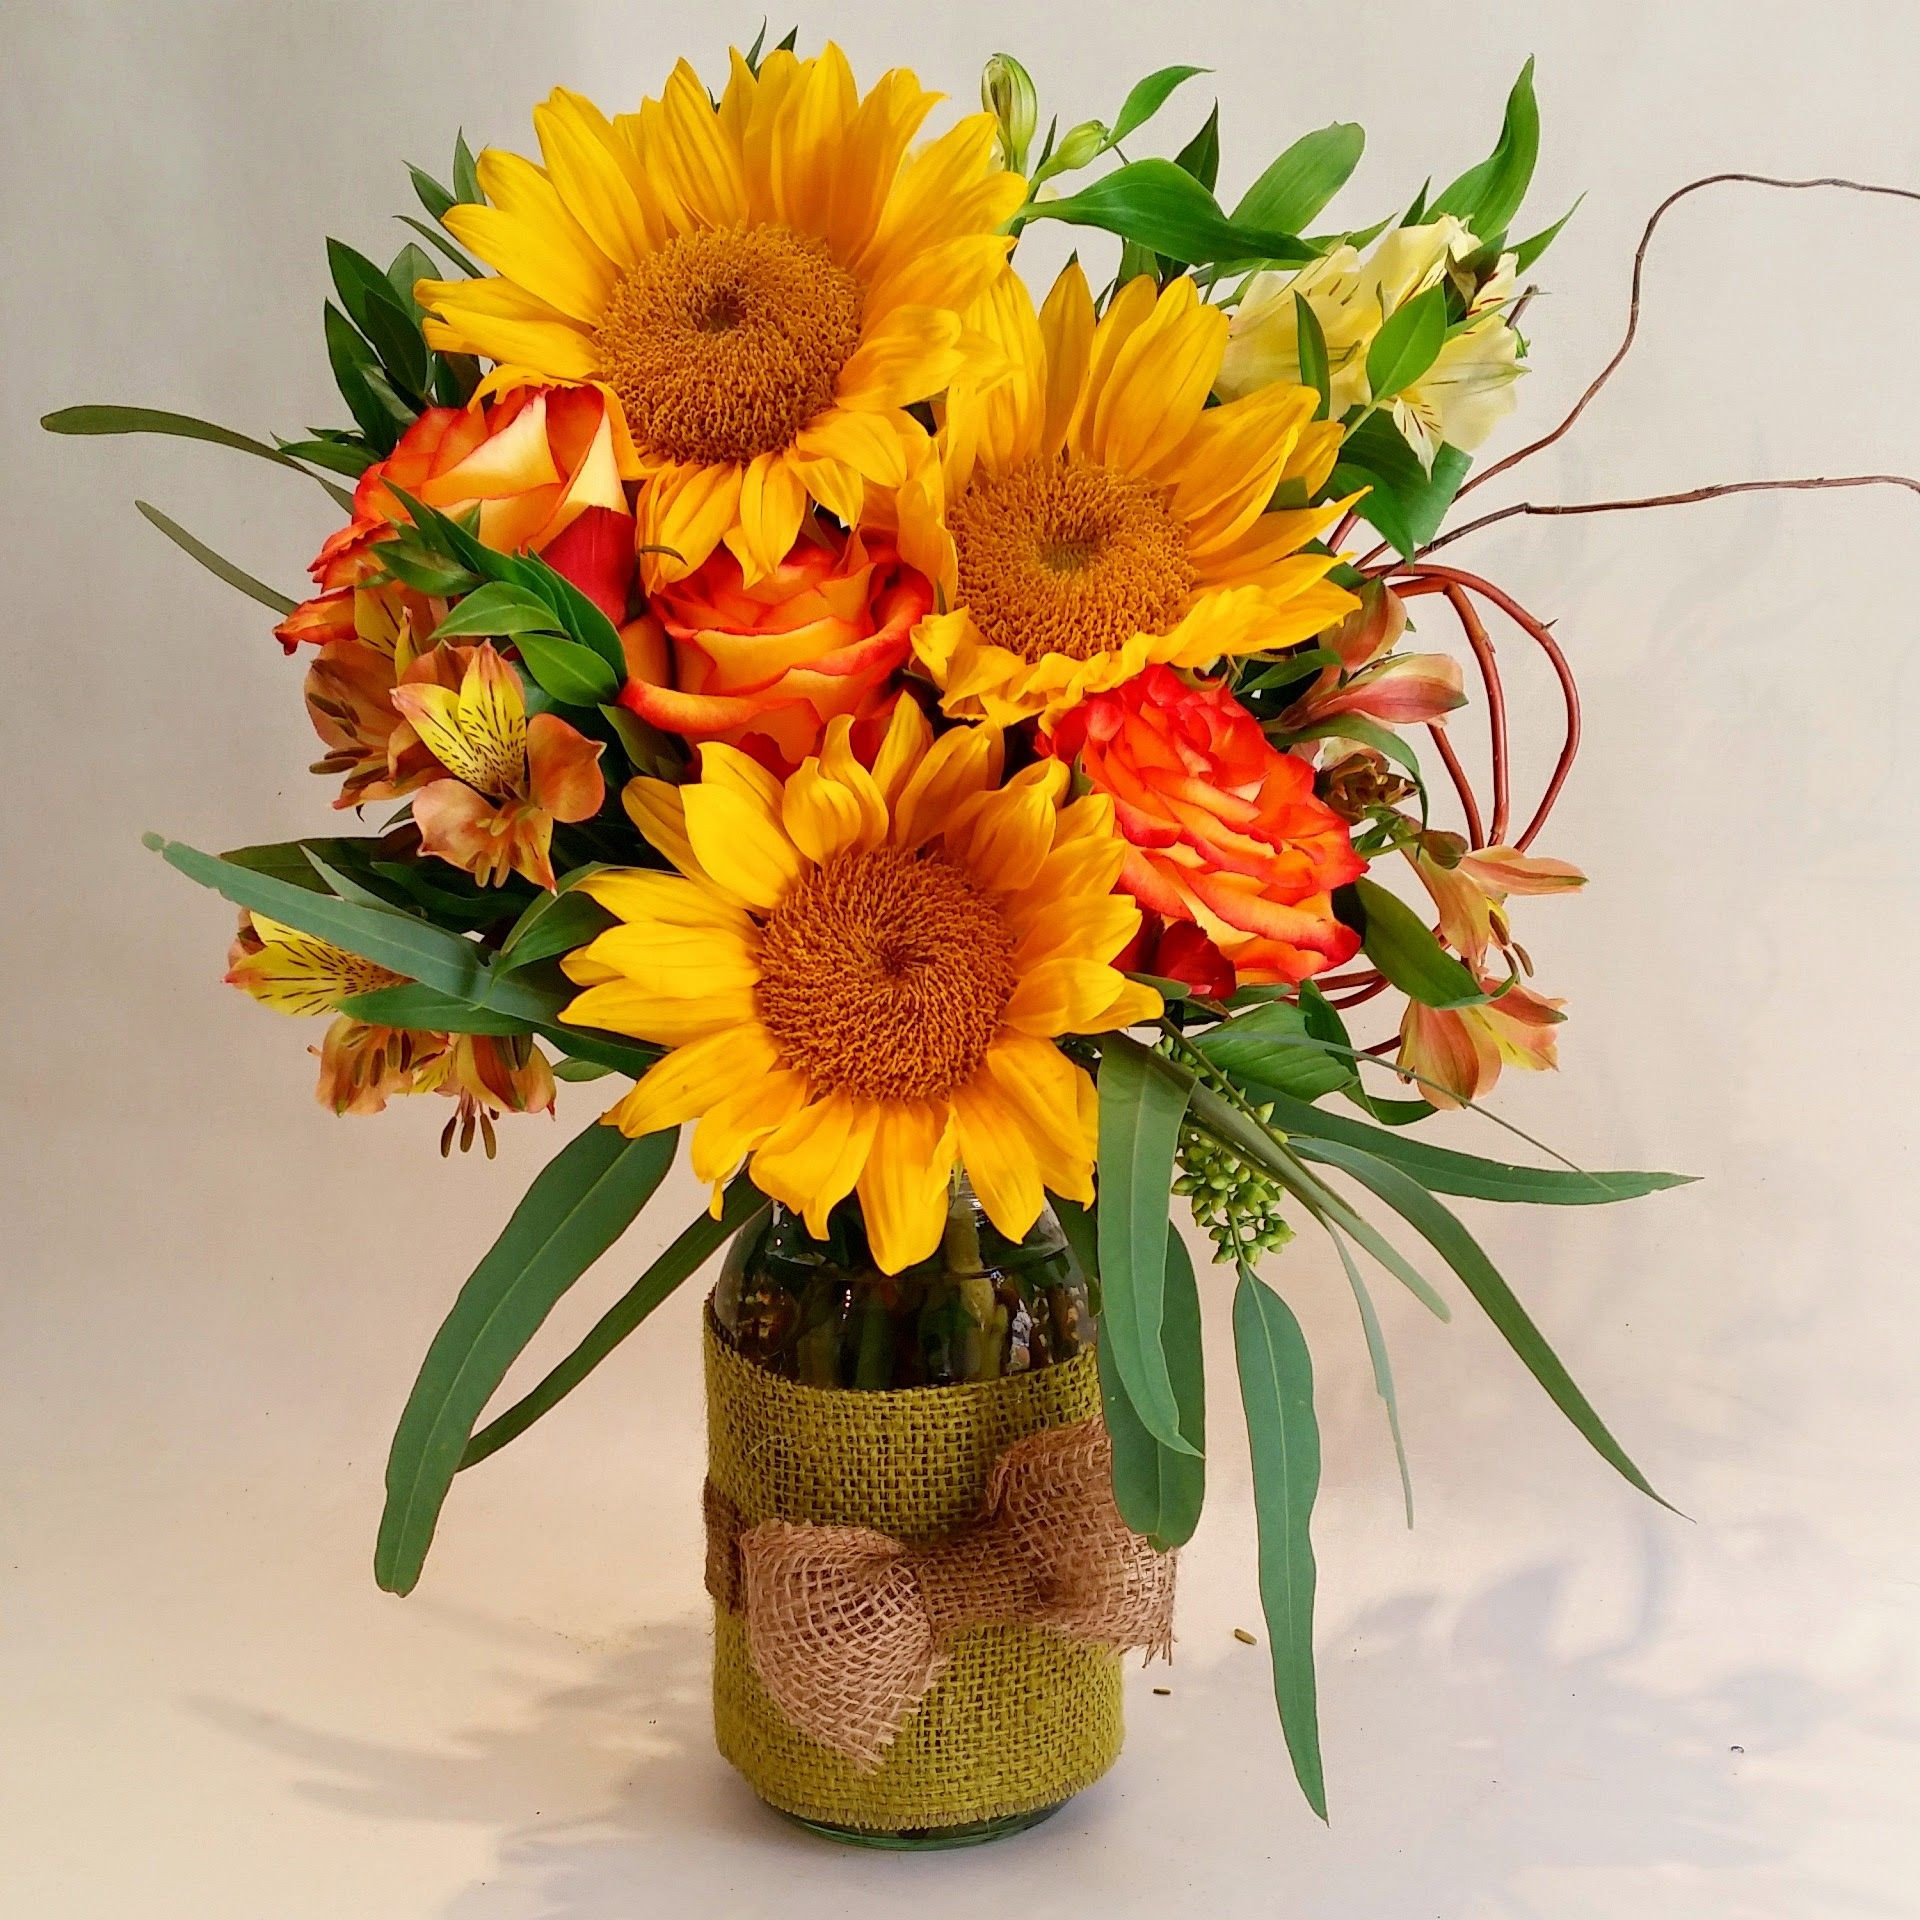 Totally cute and happy sunflowers in a mason jar decorated with burlap wrap and bow